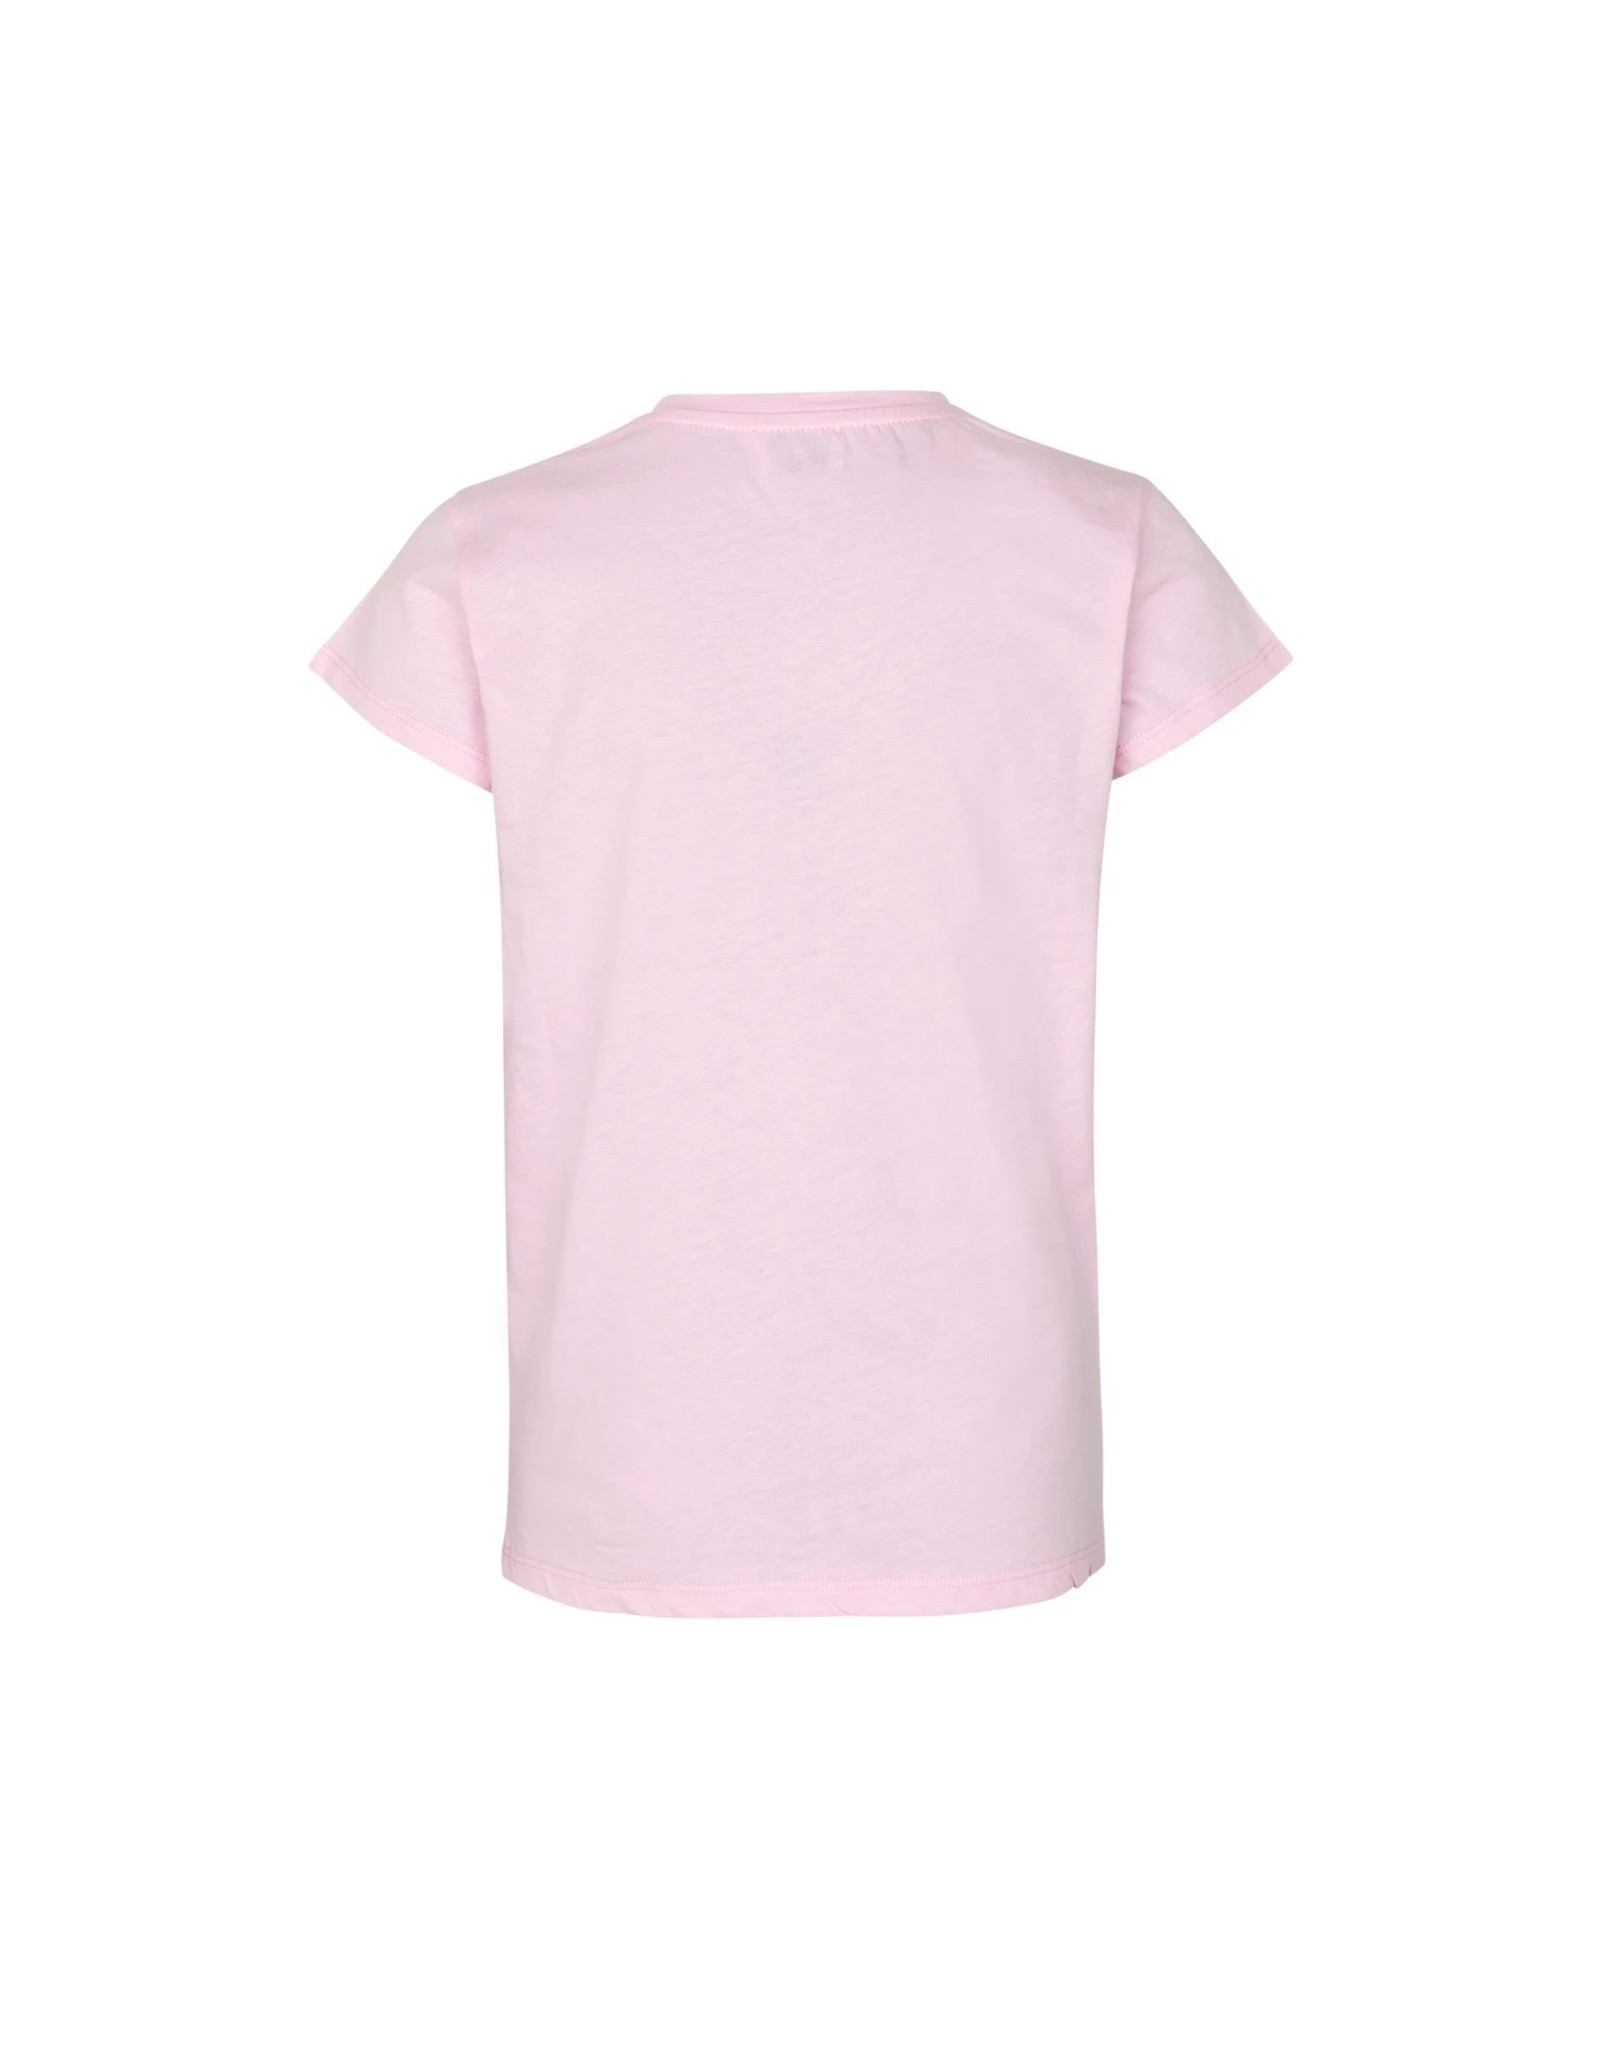 Mads Norgaard Tuvina SS Pink